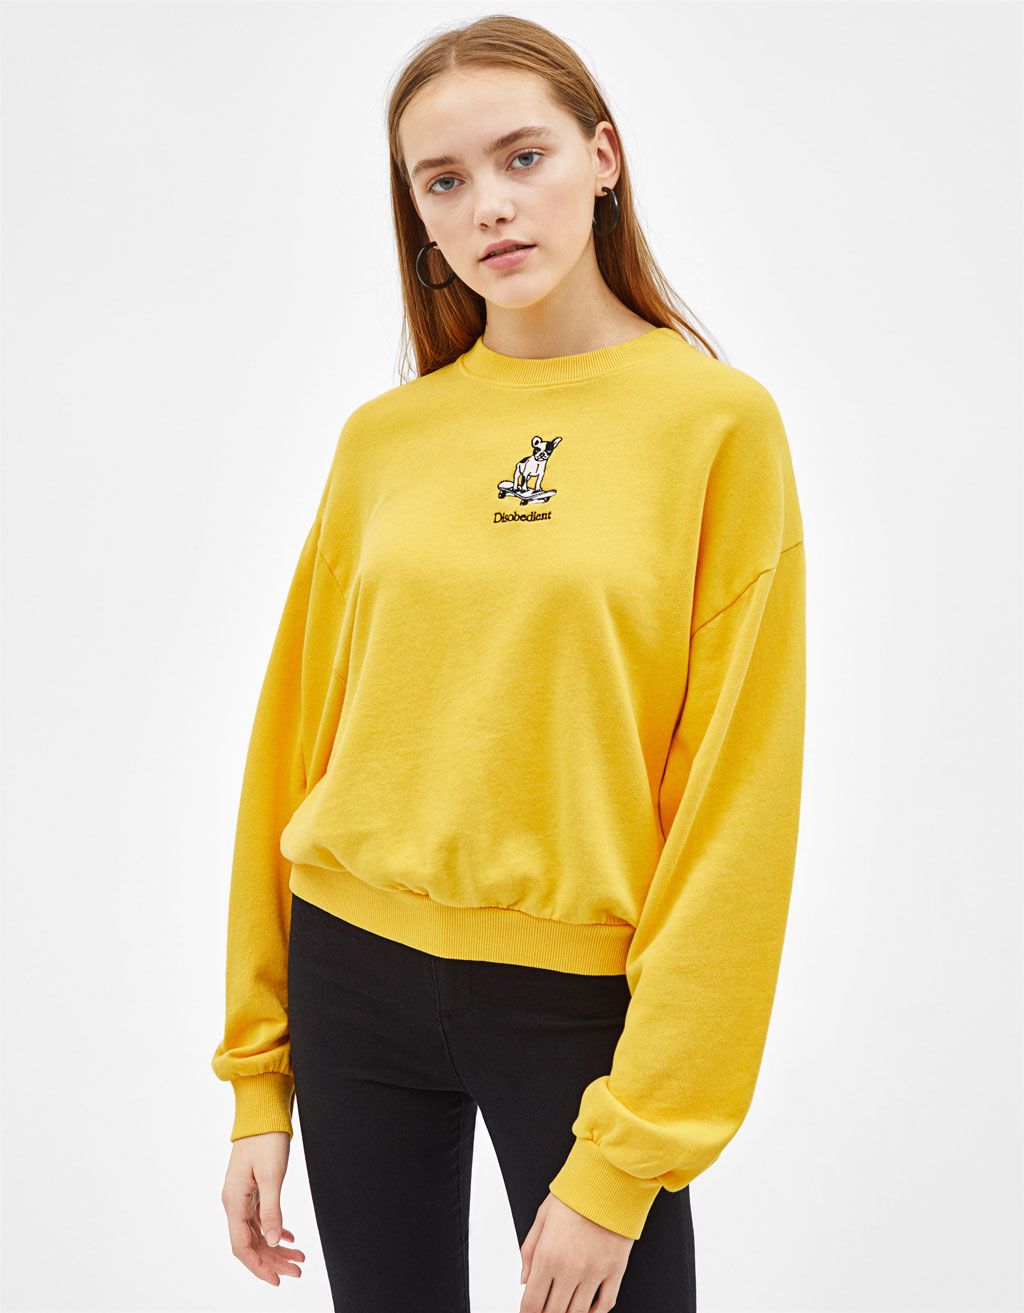 Embroidered plush jersey sweatshirt